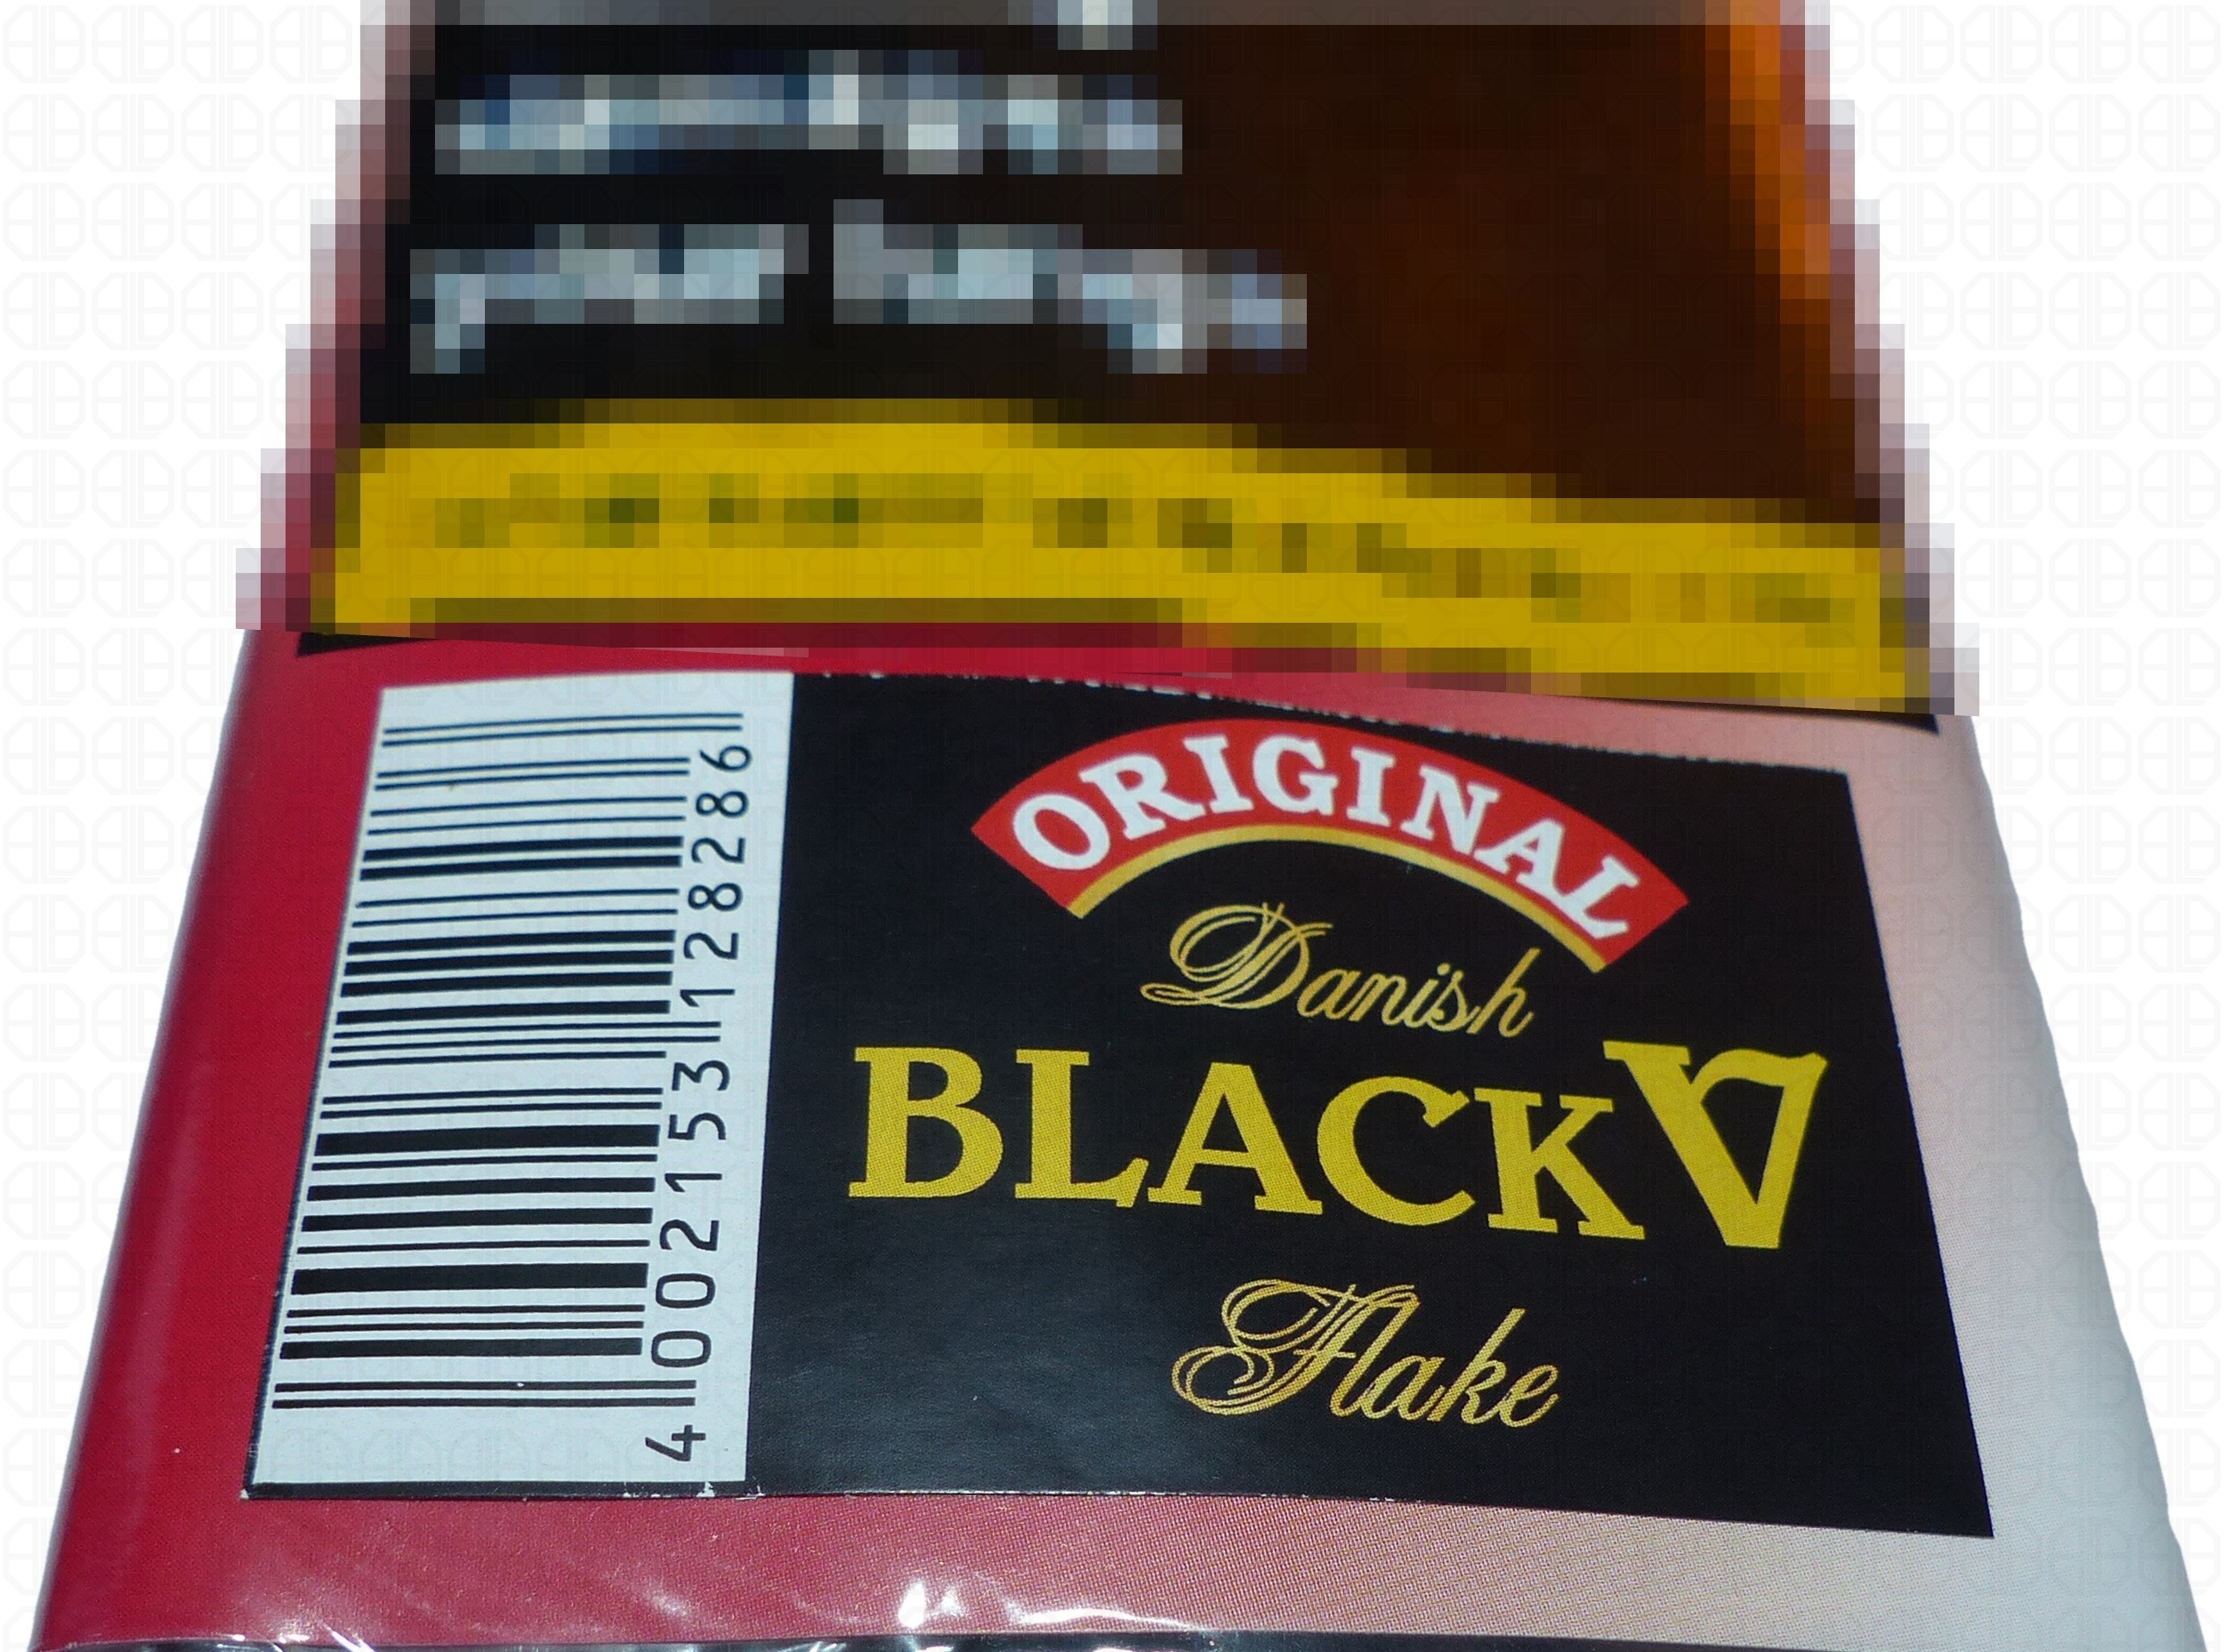 Planta Danish Black Vanilla Flake (40g)